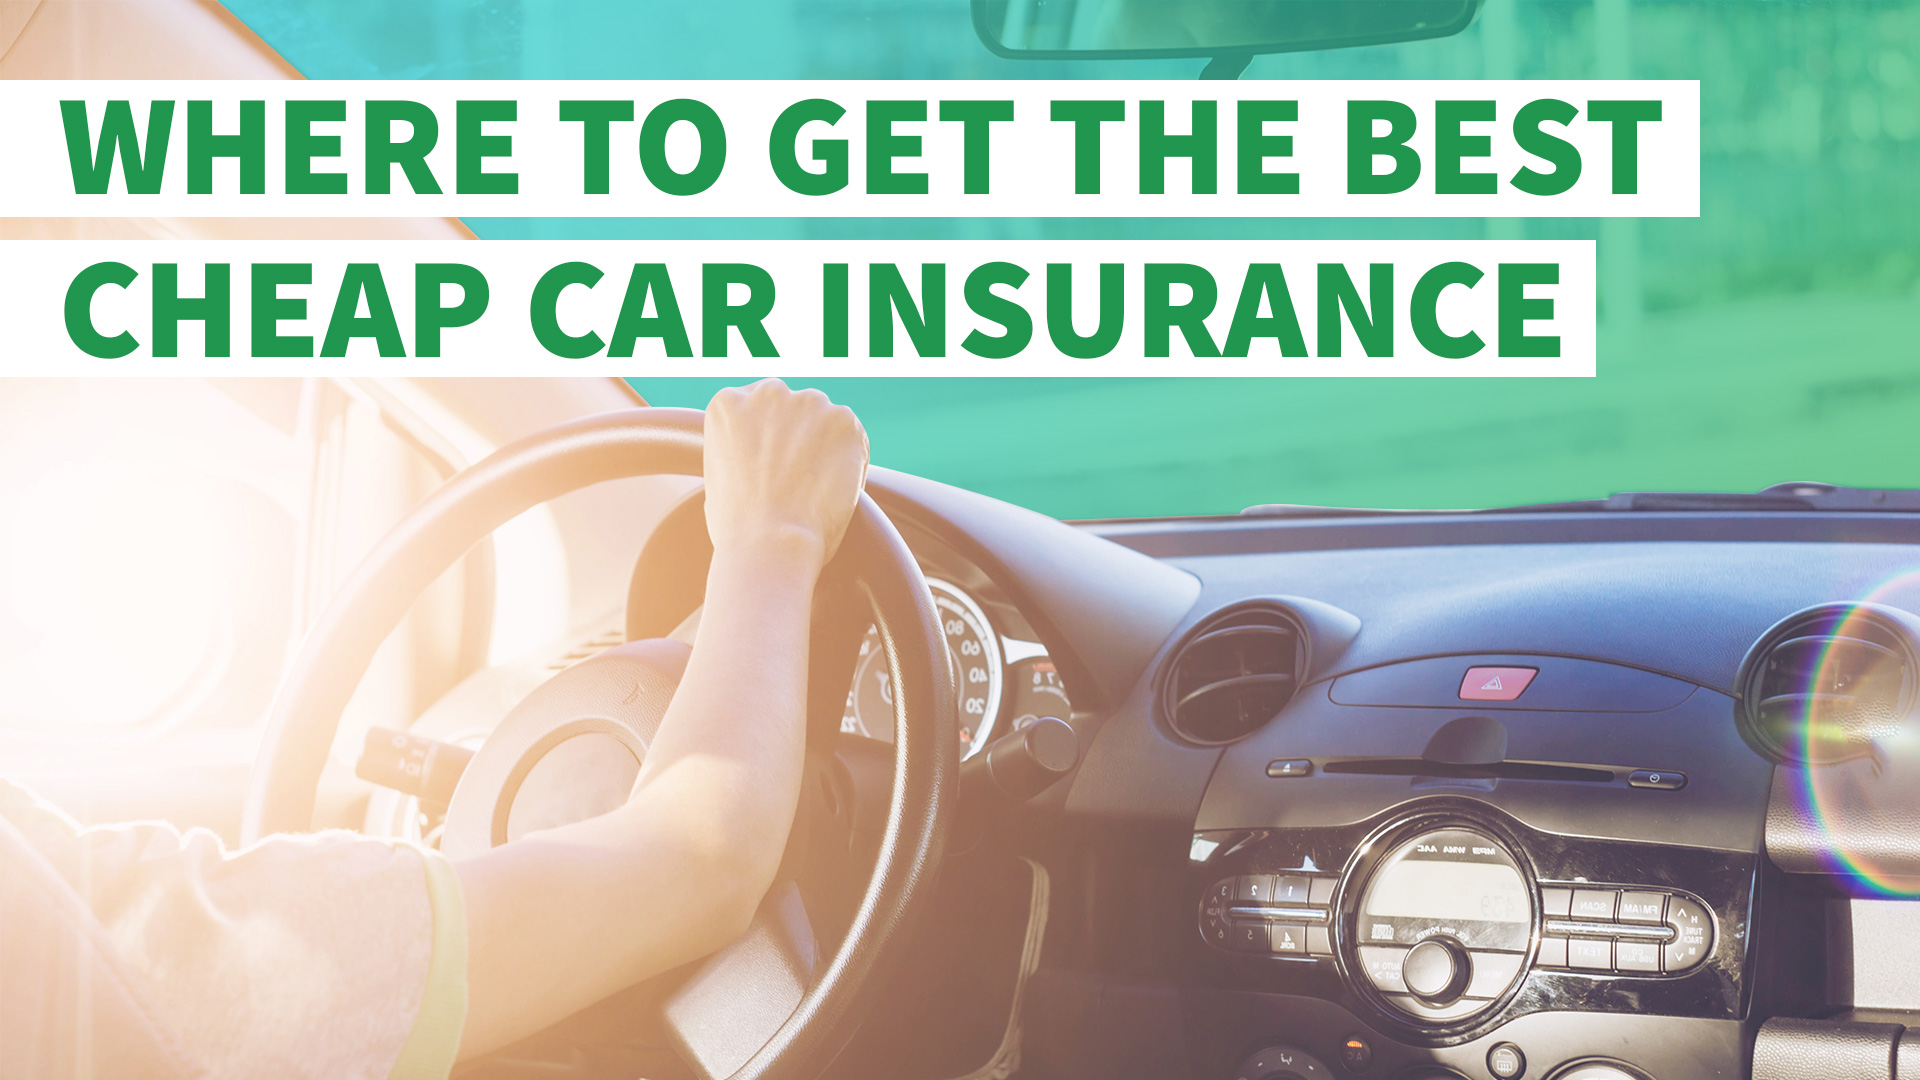 Where to Get the Best Cheap Car Insurance